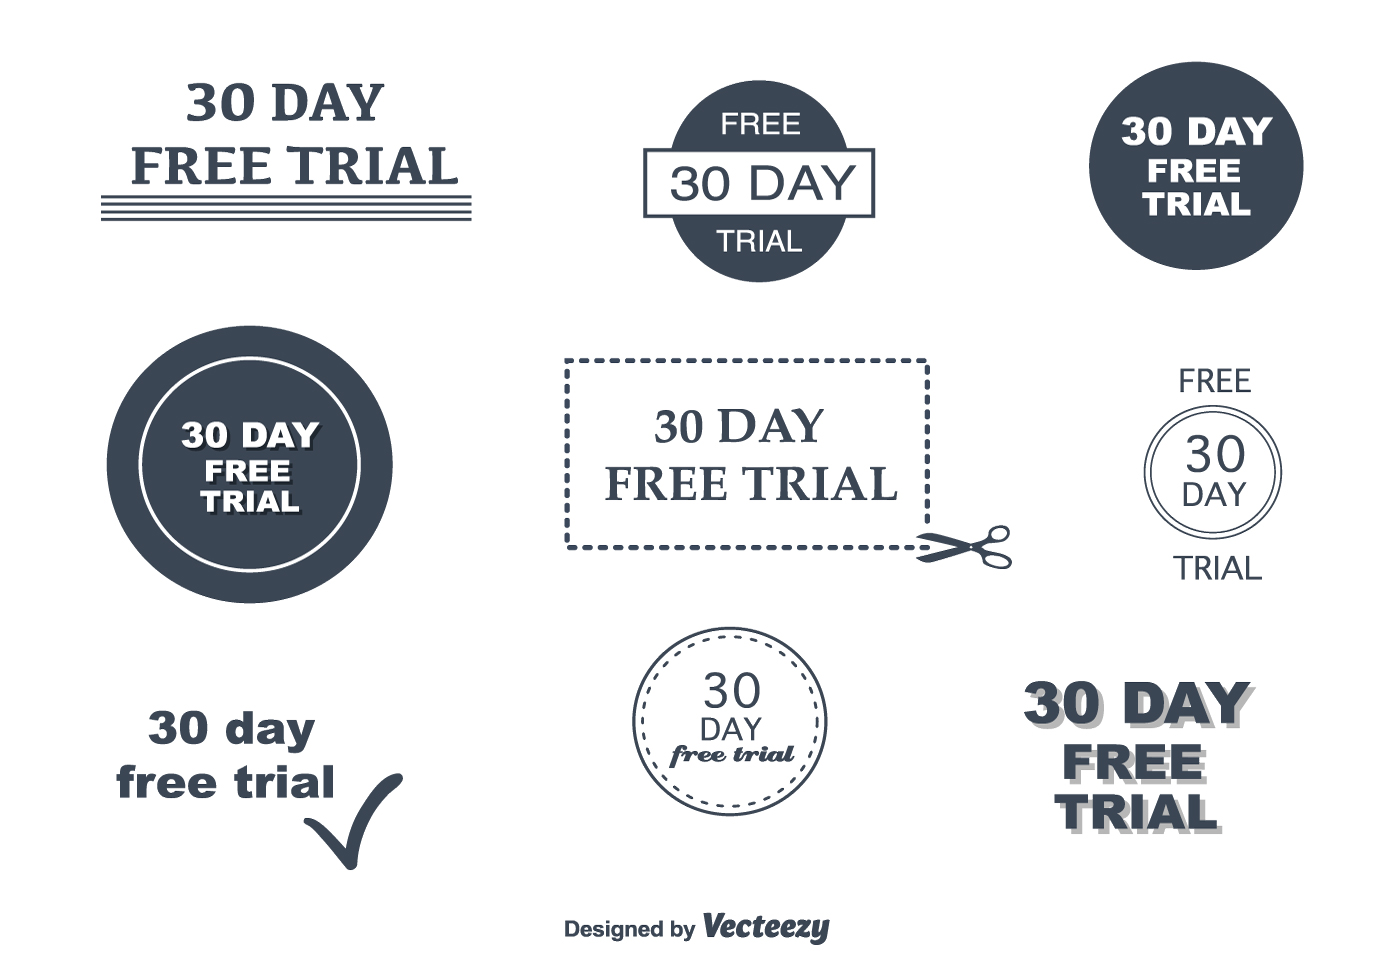 30 day free trial vectors download free vector art stock graphics images